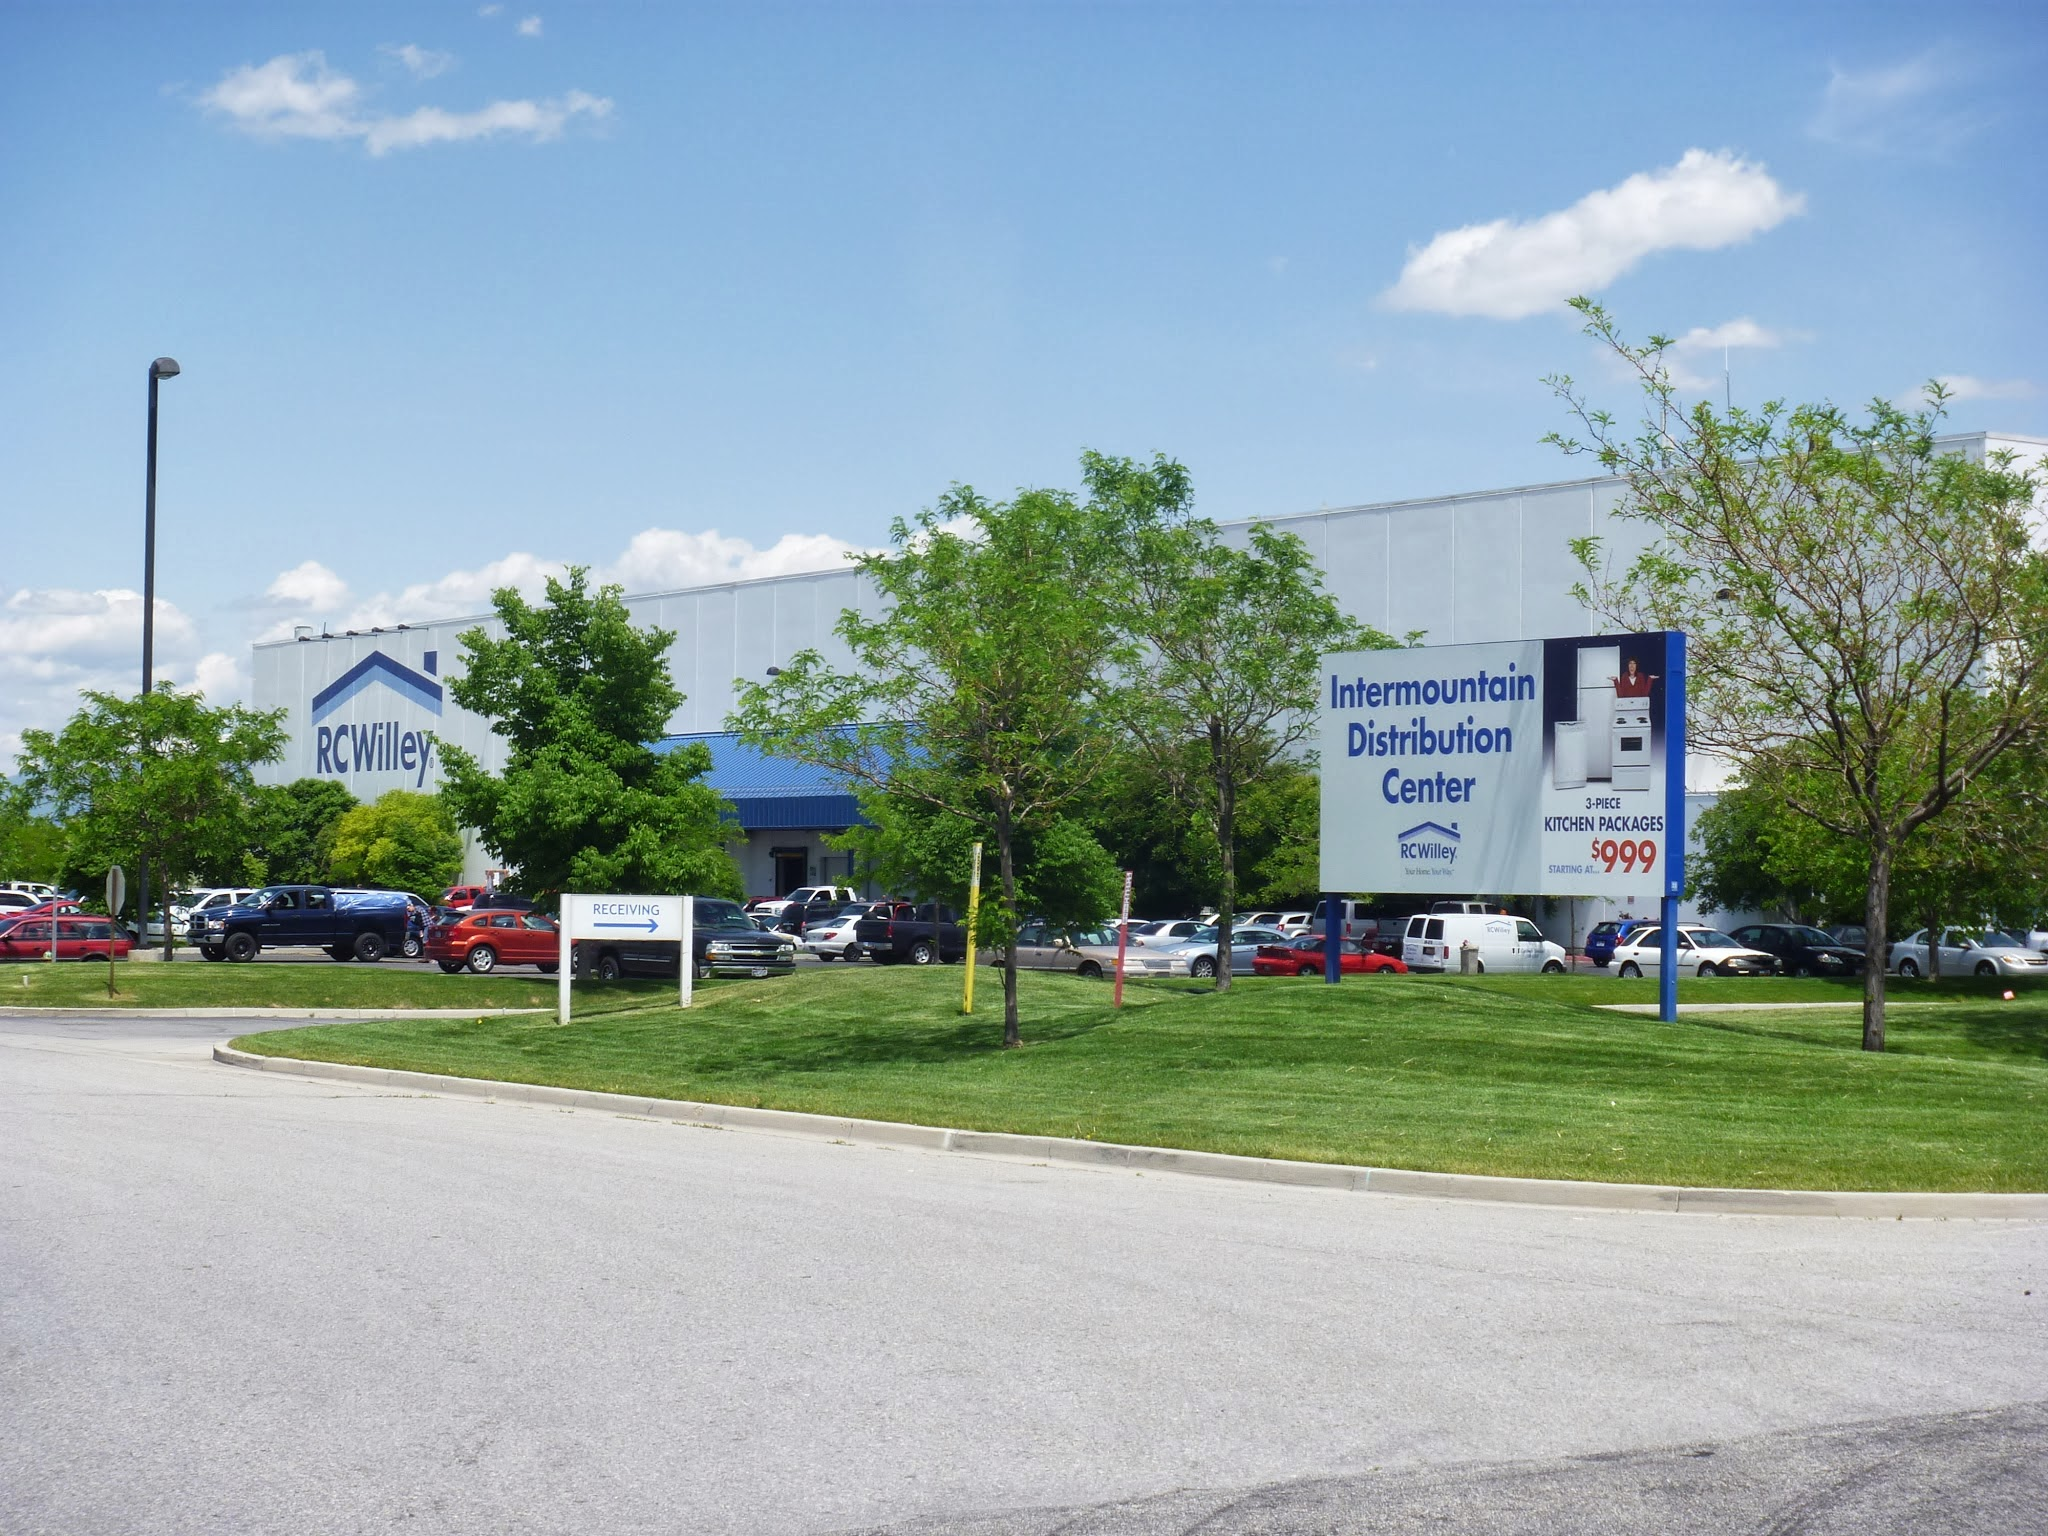 RC Willey Distribution Center